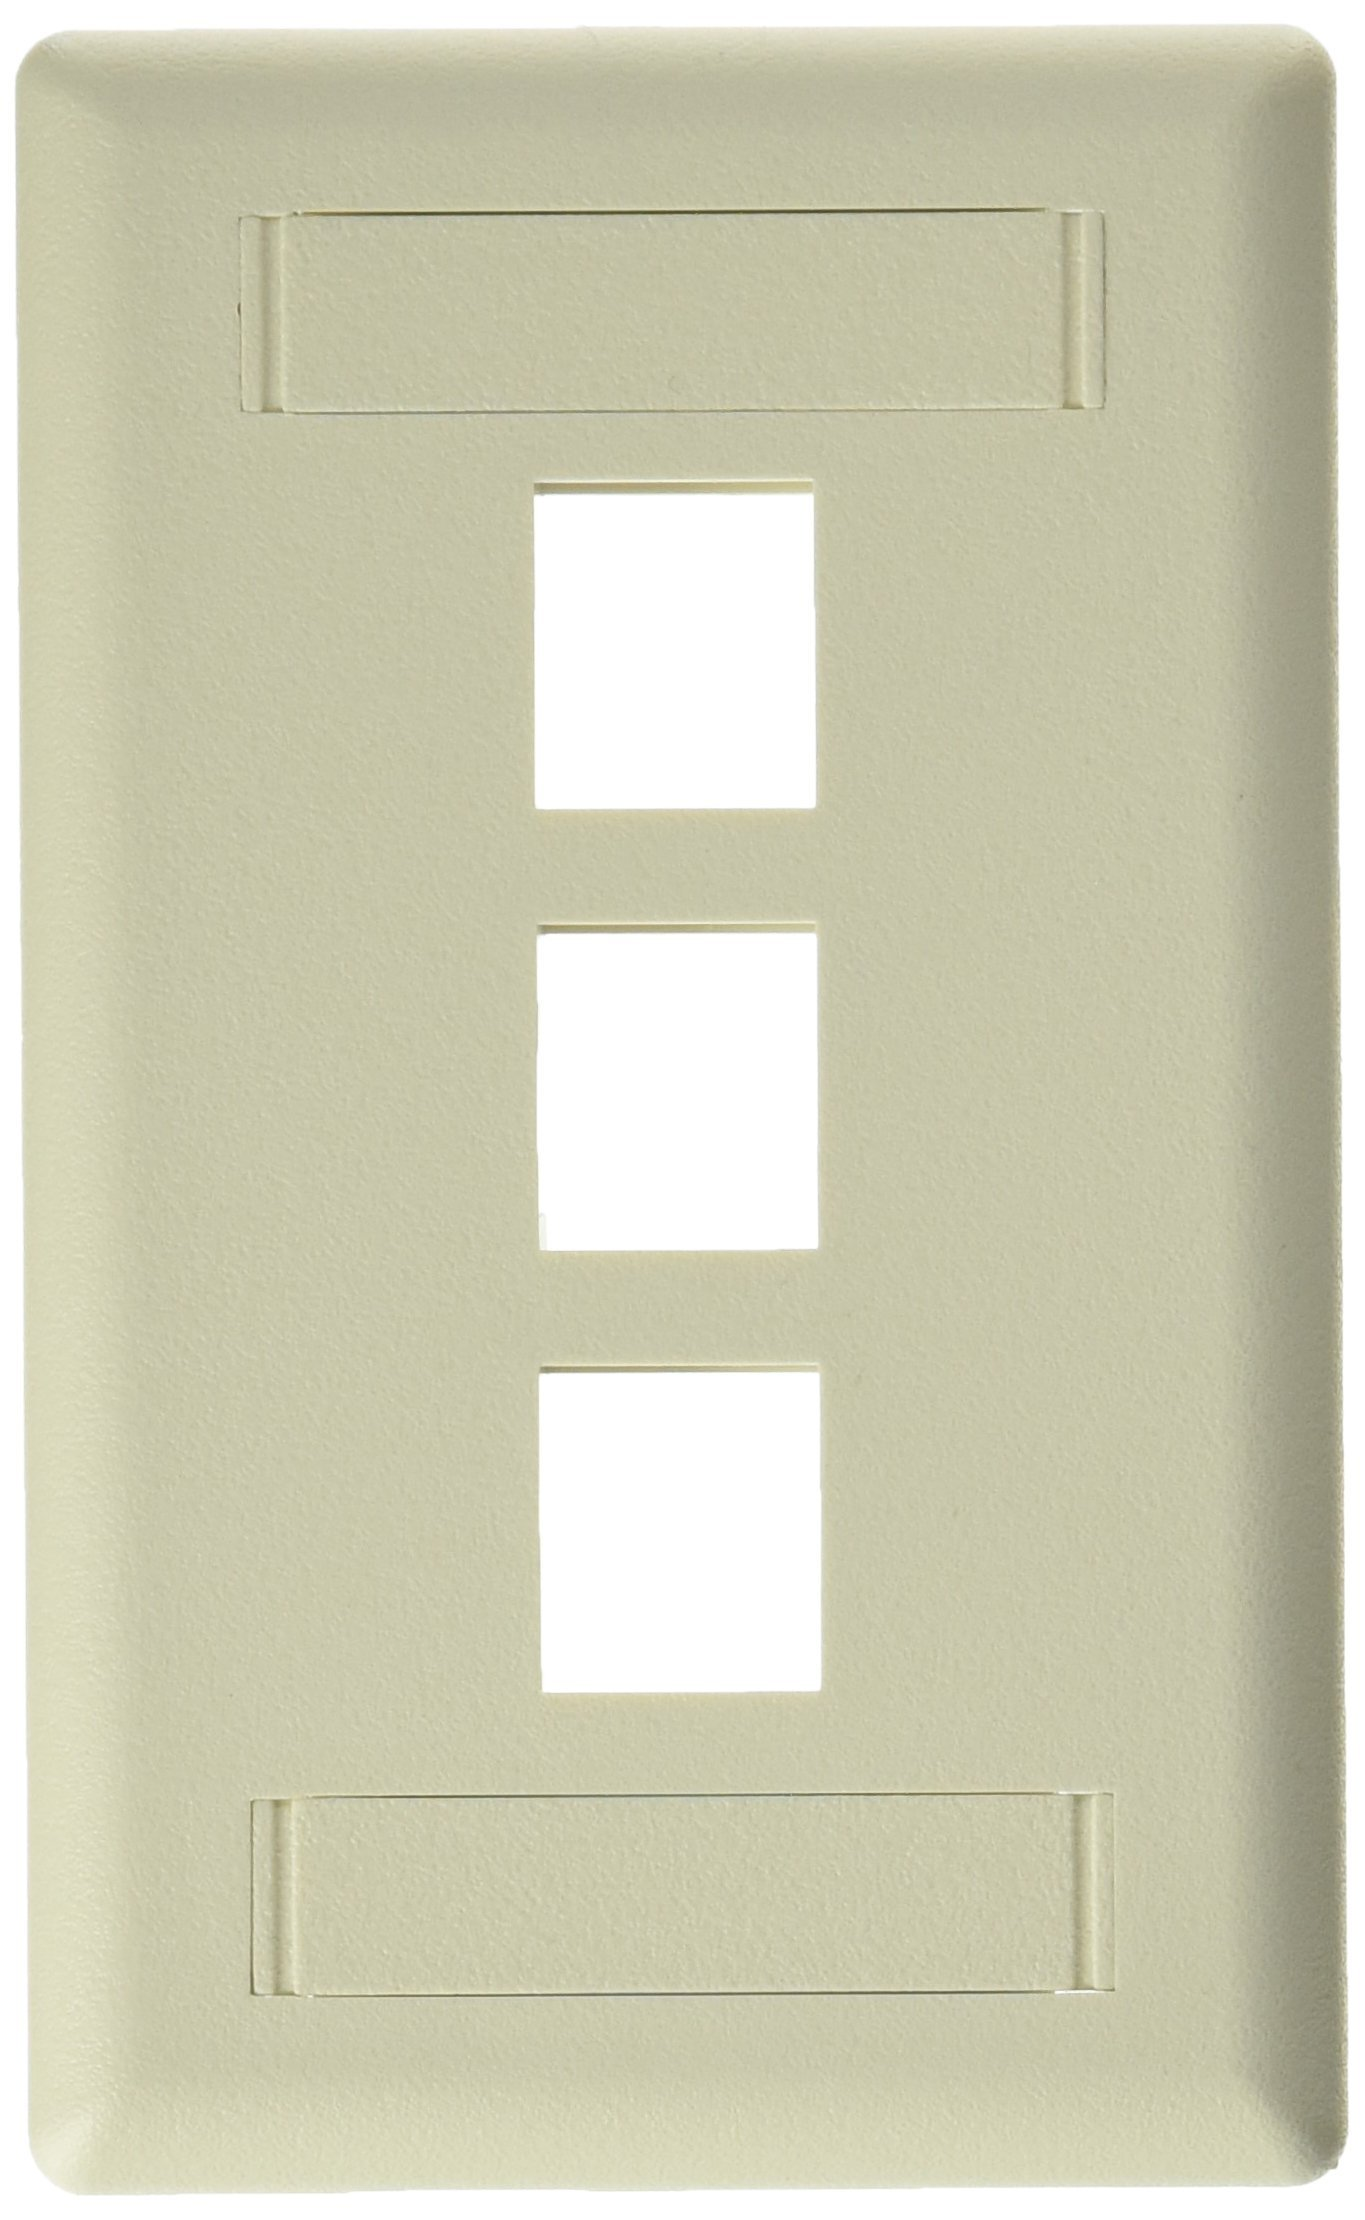 Hubbell IFP13OW Flush Phone/Data/Multimedia Wall Plate, 1 Gang, 3 Port, Office White (Pack of 25)